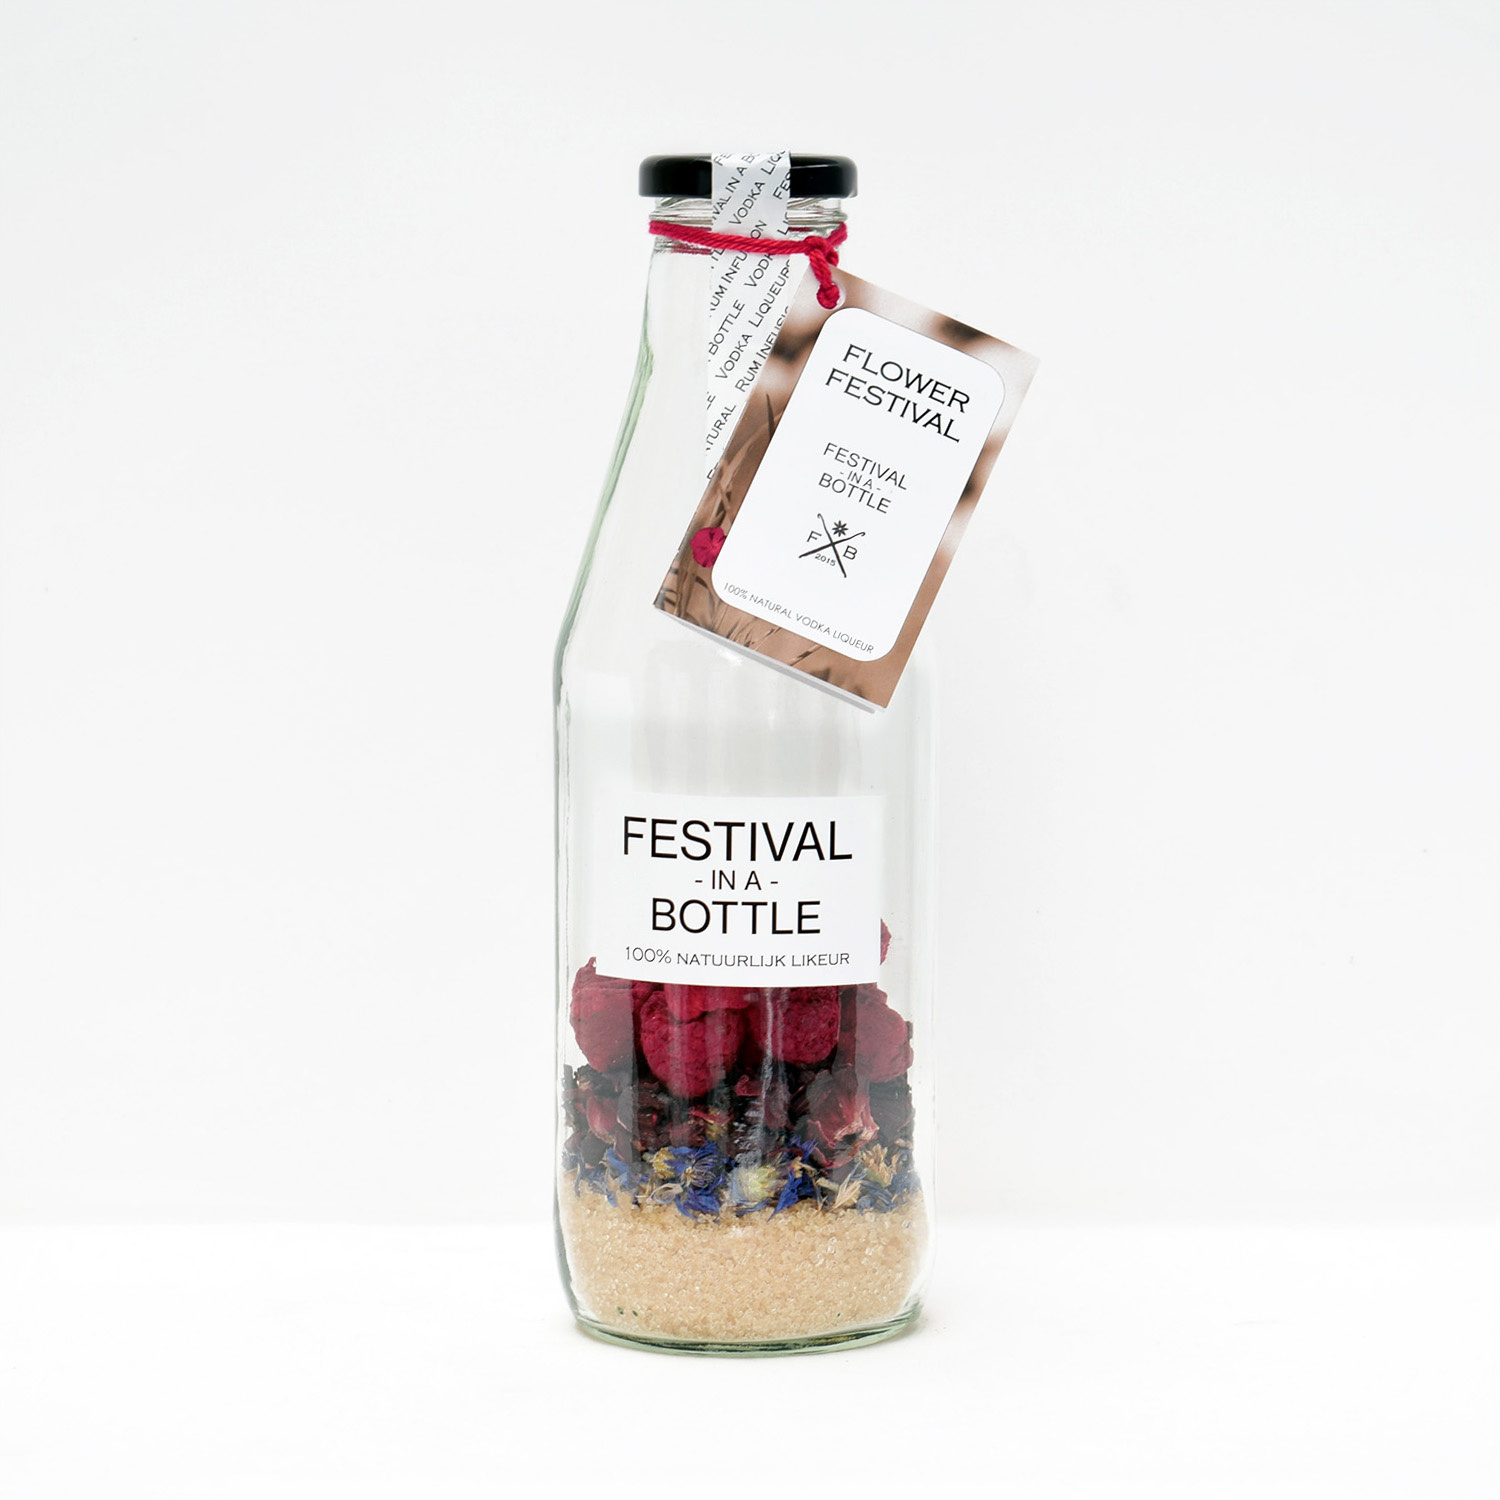 Flower Festival - Festival in a Bottle